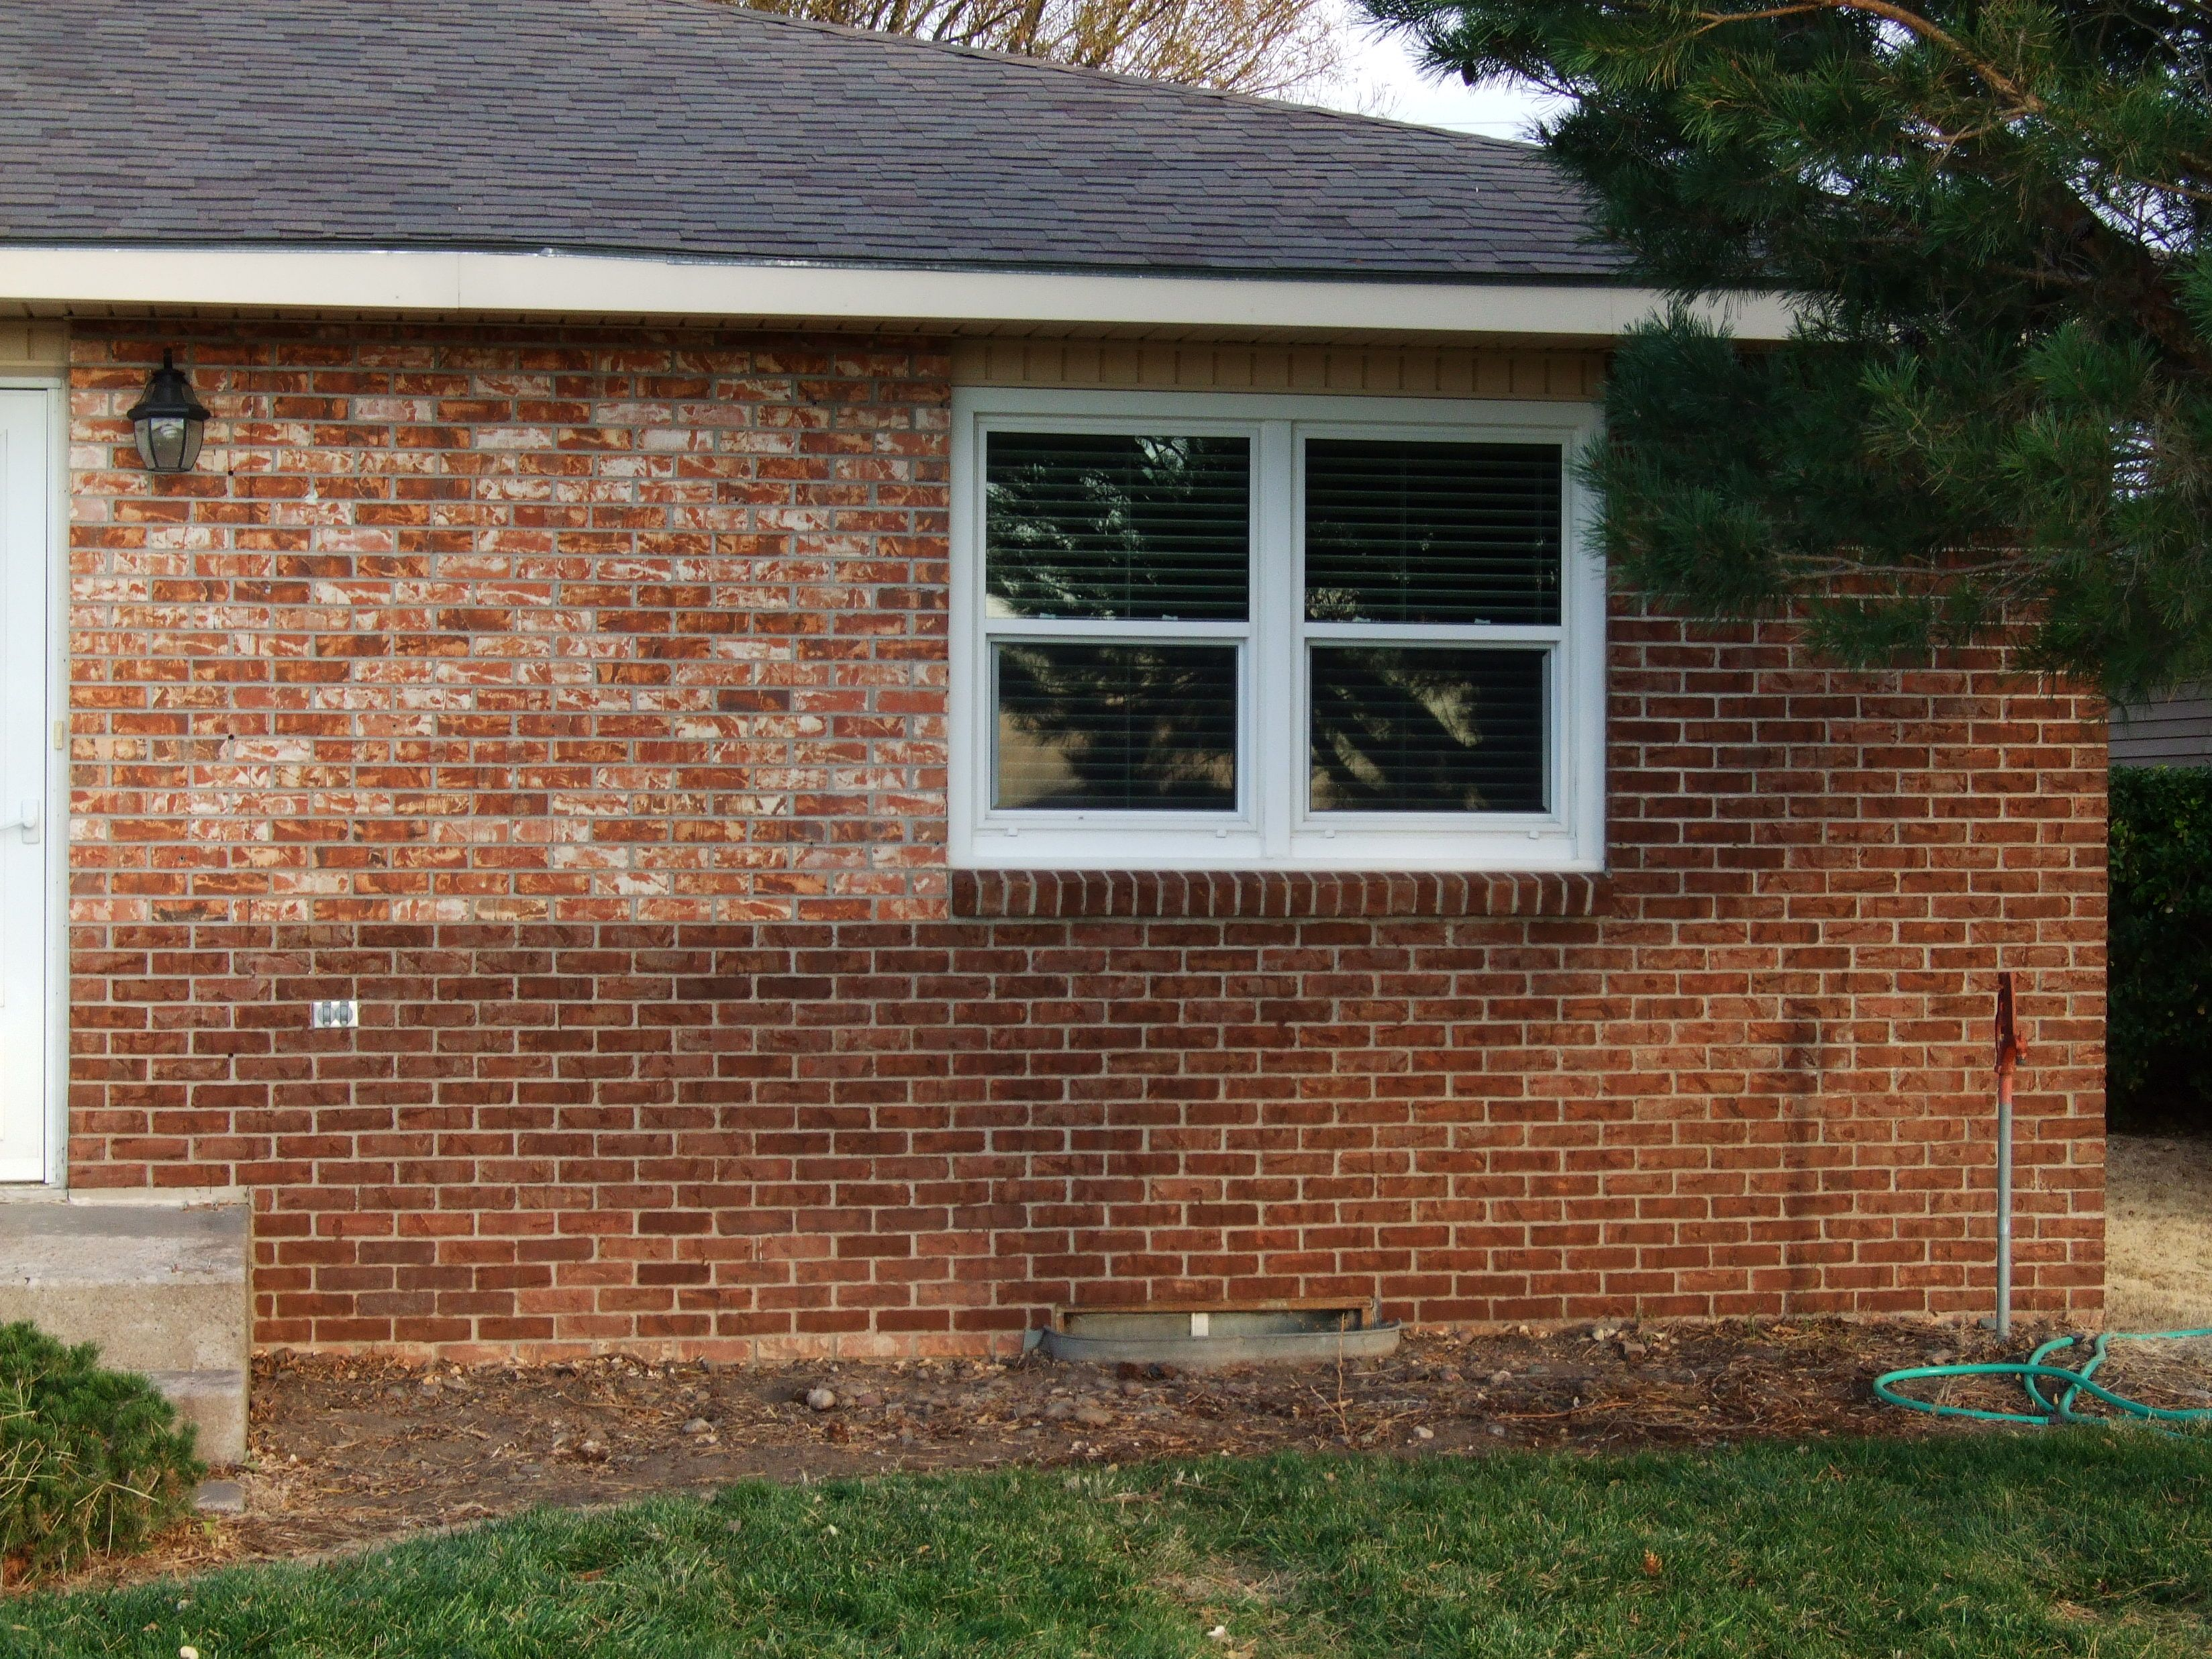 How to change brick color on house home decor for How to wash your house exterior